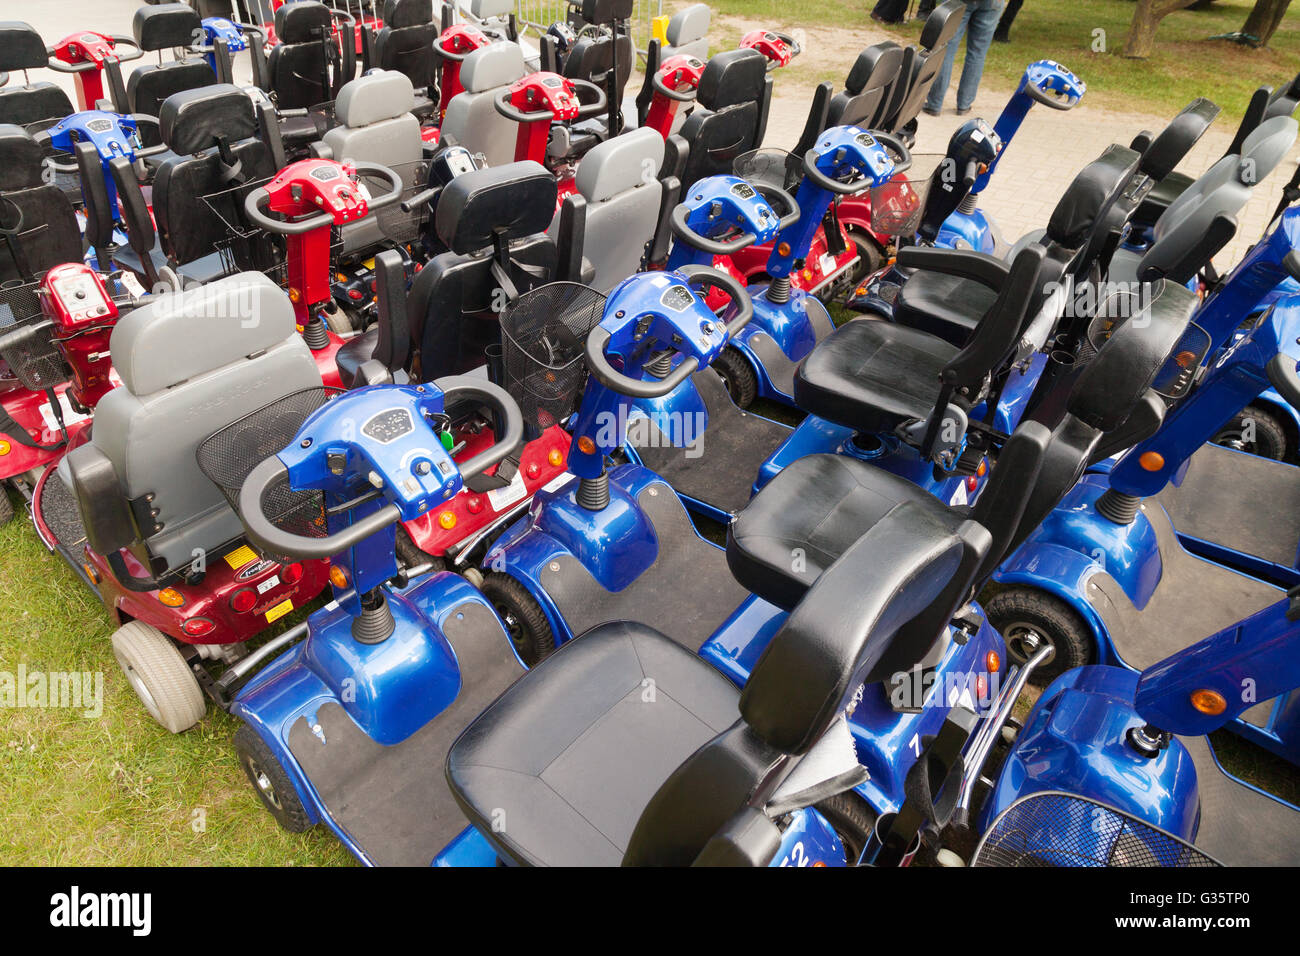 A group of mobility scooters for the use of disabled people, UK - Stock Image